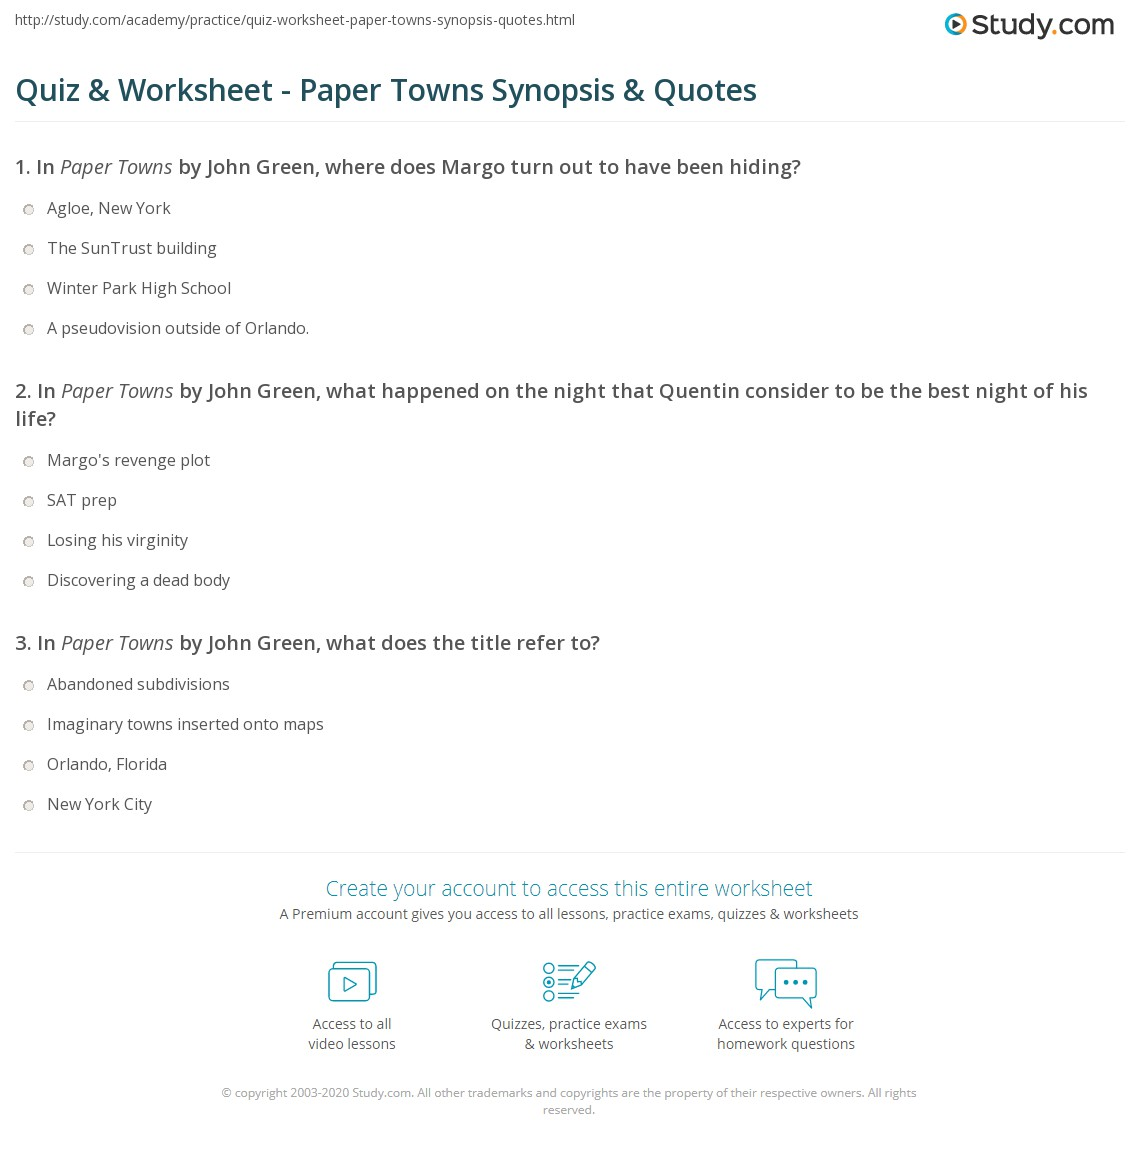 quiz worksheet paper towns synopsis quotes. Black Bedroom Furniture Sets. Home Design Ideas